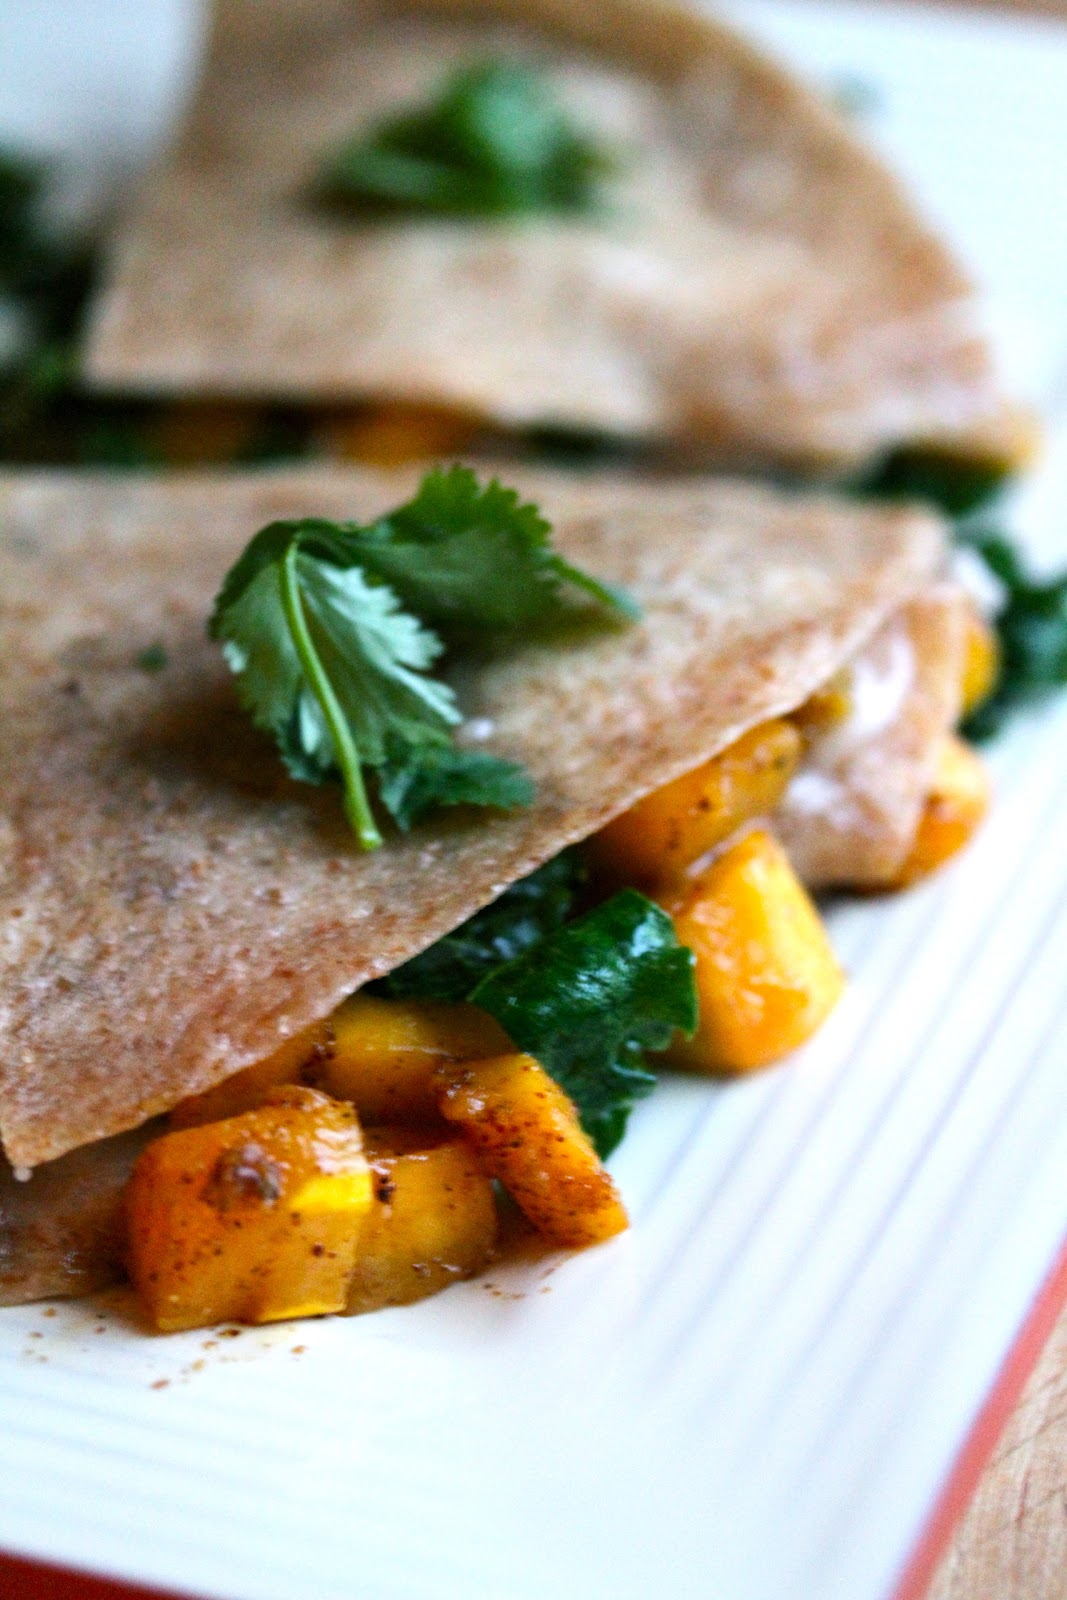 Smith's Vegan Kitchen: Butternut Squash and Kale Quesadillas